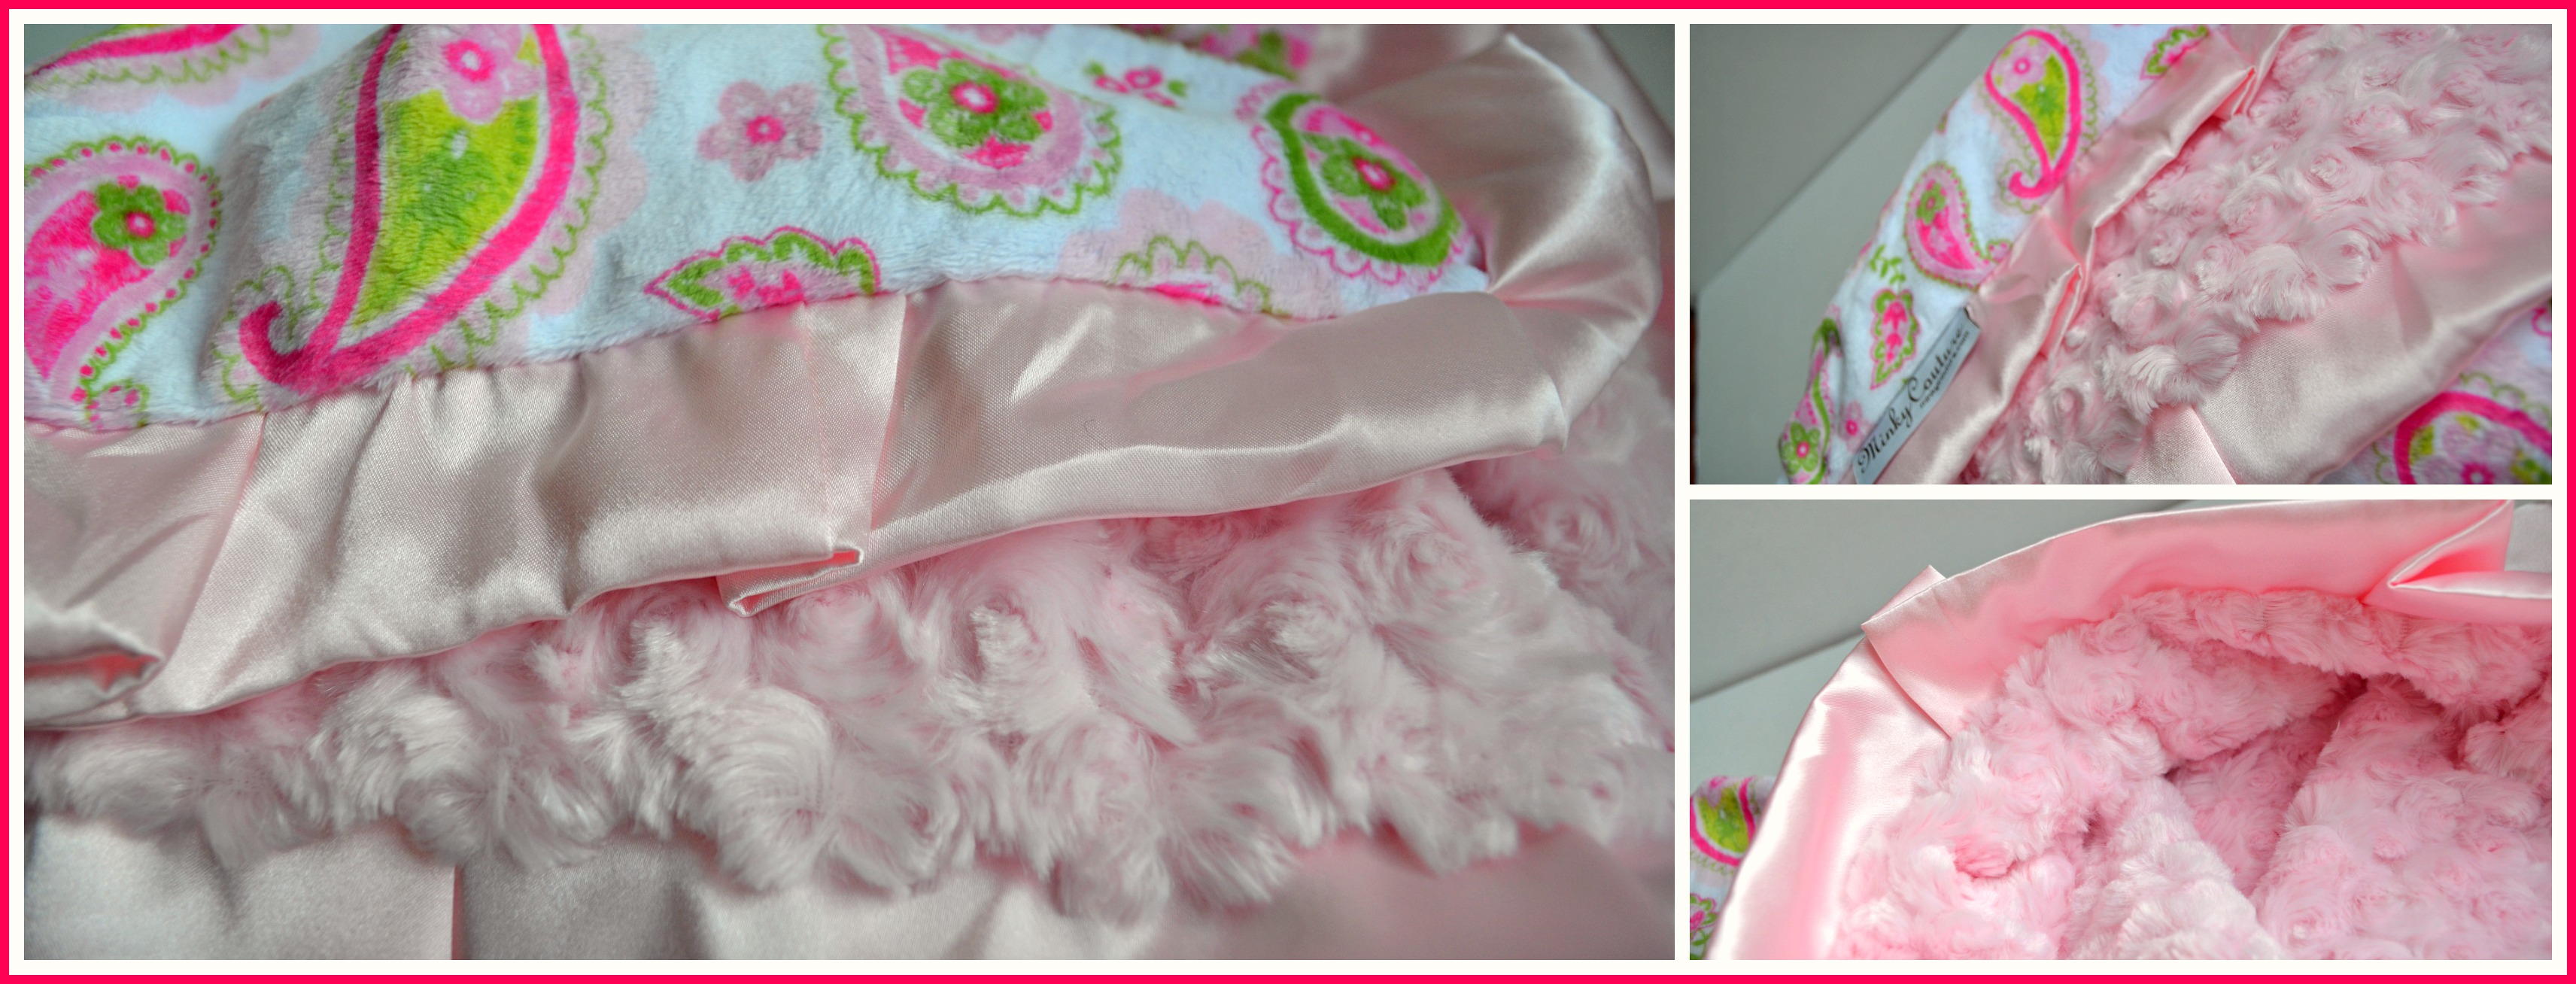 Minky Couture Infant Blanket Review (Getting Ready For Baby Gift Guide)